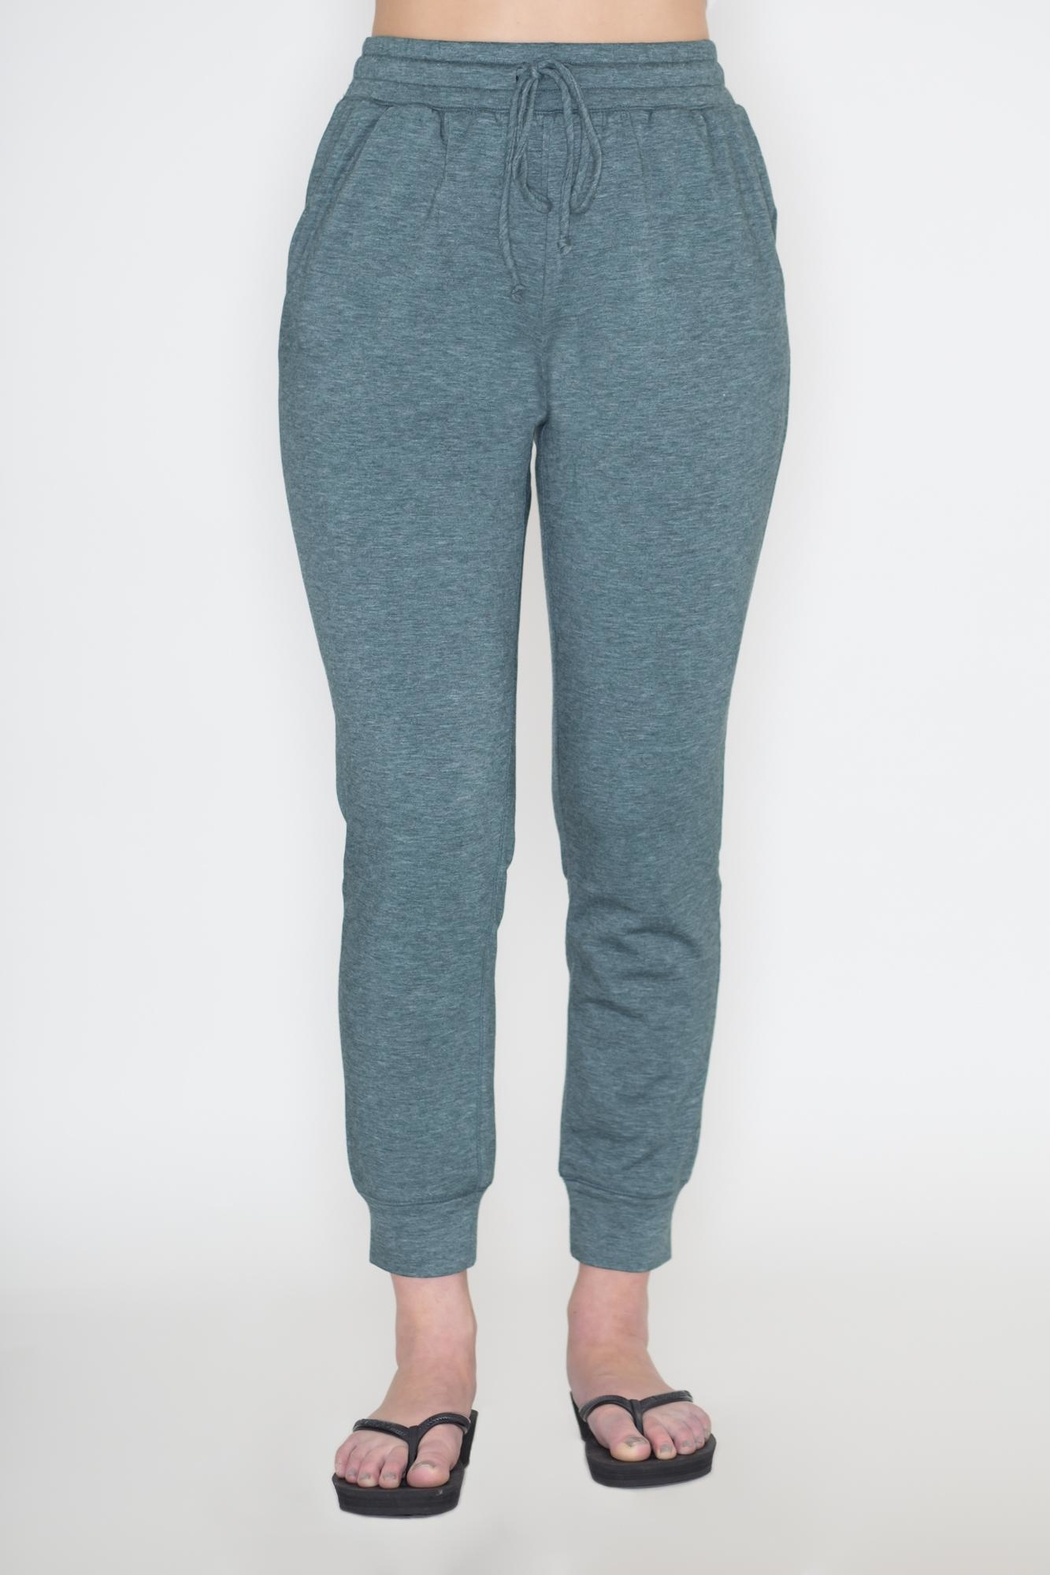 Cherish Sage Jogger Pants - Main Image